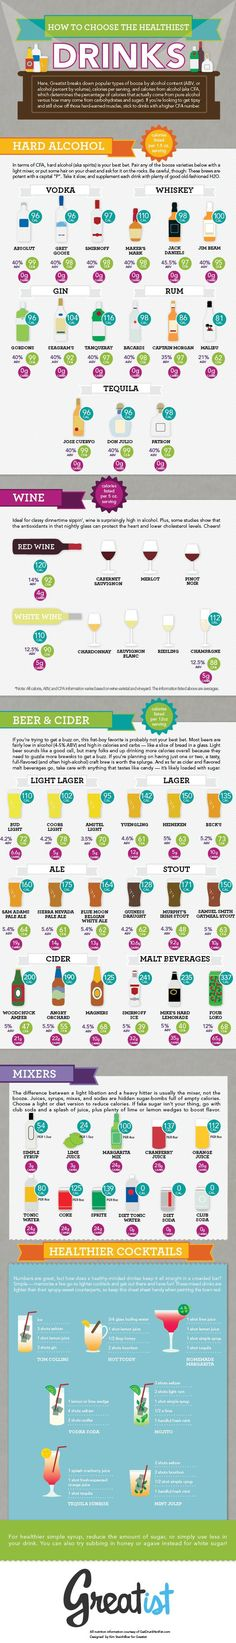 a calorie cheat sheet for the bar :-)